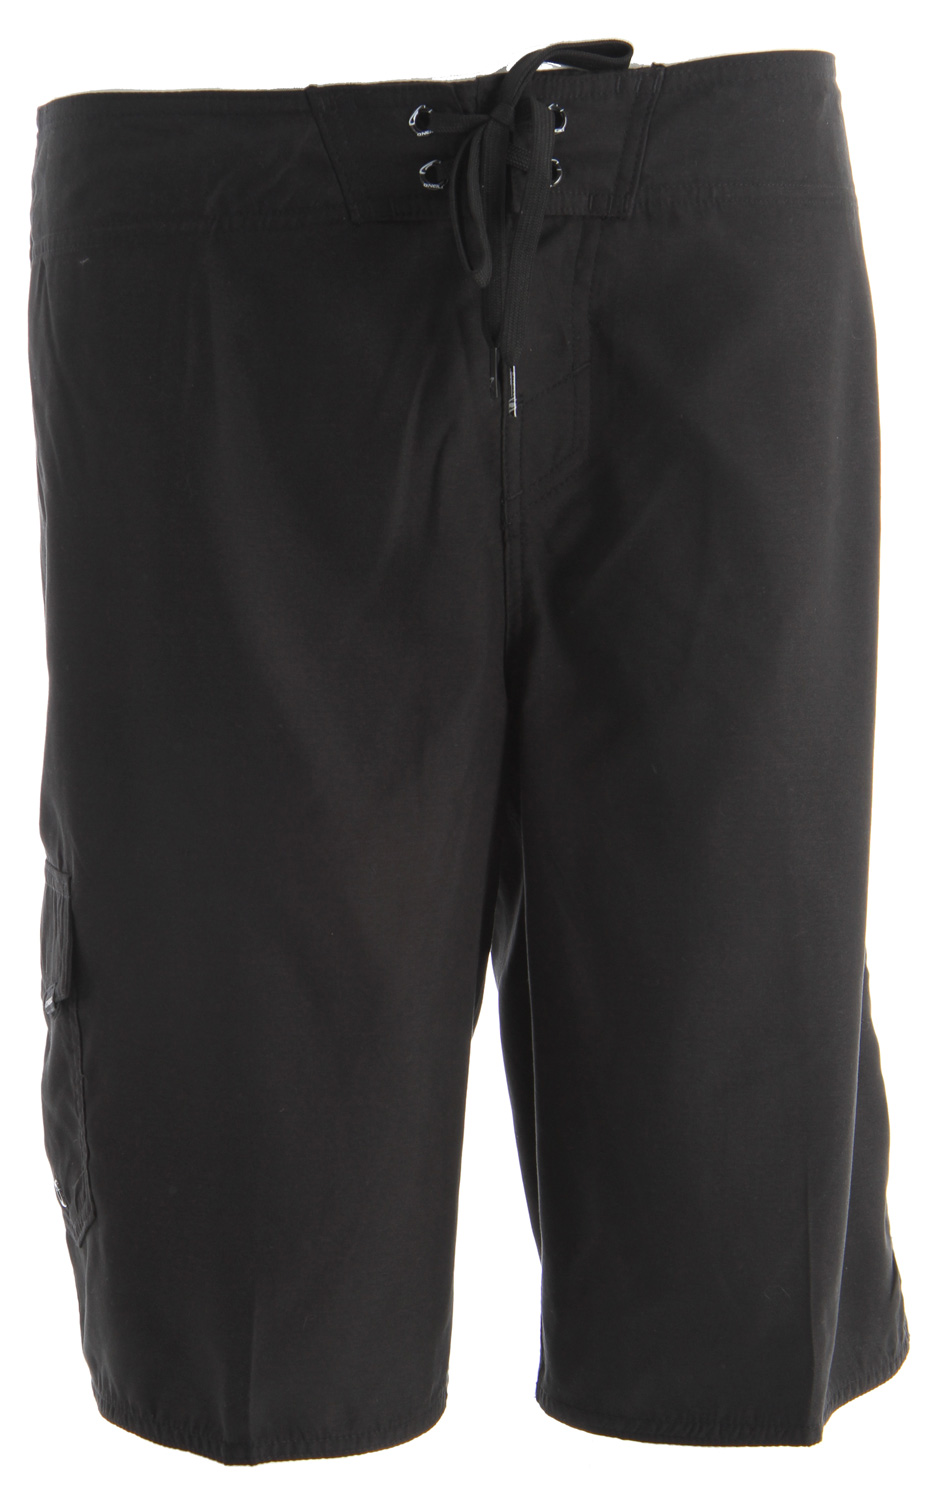 "Surf Key Features of the O'Neill Santa Cruz Solid 2 Boardshorts: Light ultrasuede 22"" outseam Comfort fly closure Embroidered and screened logos - $20.95"